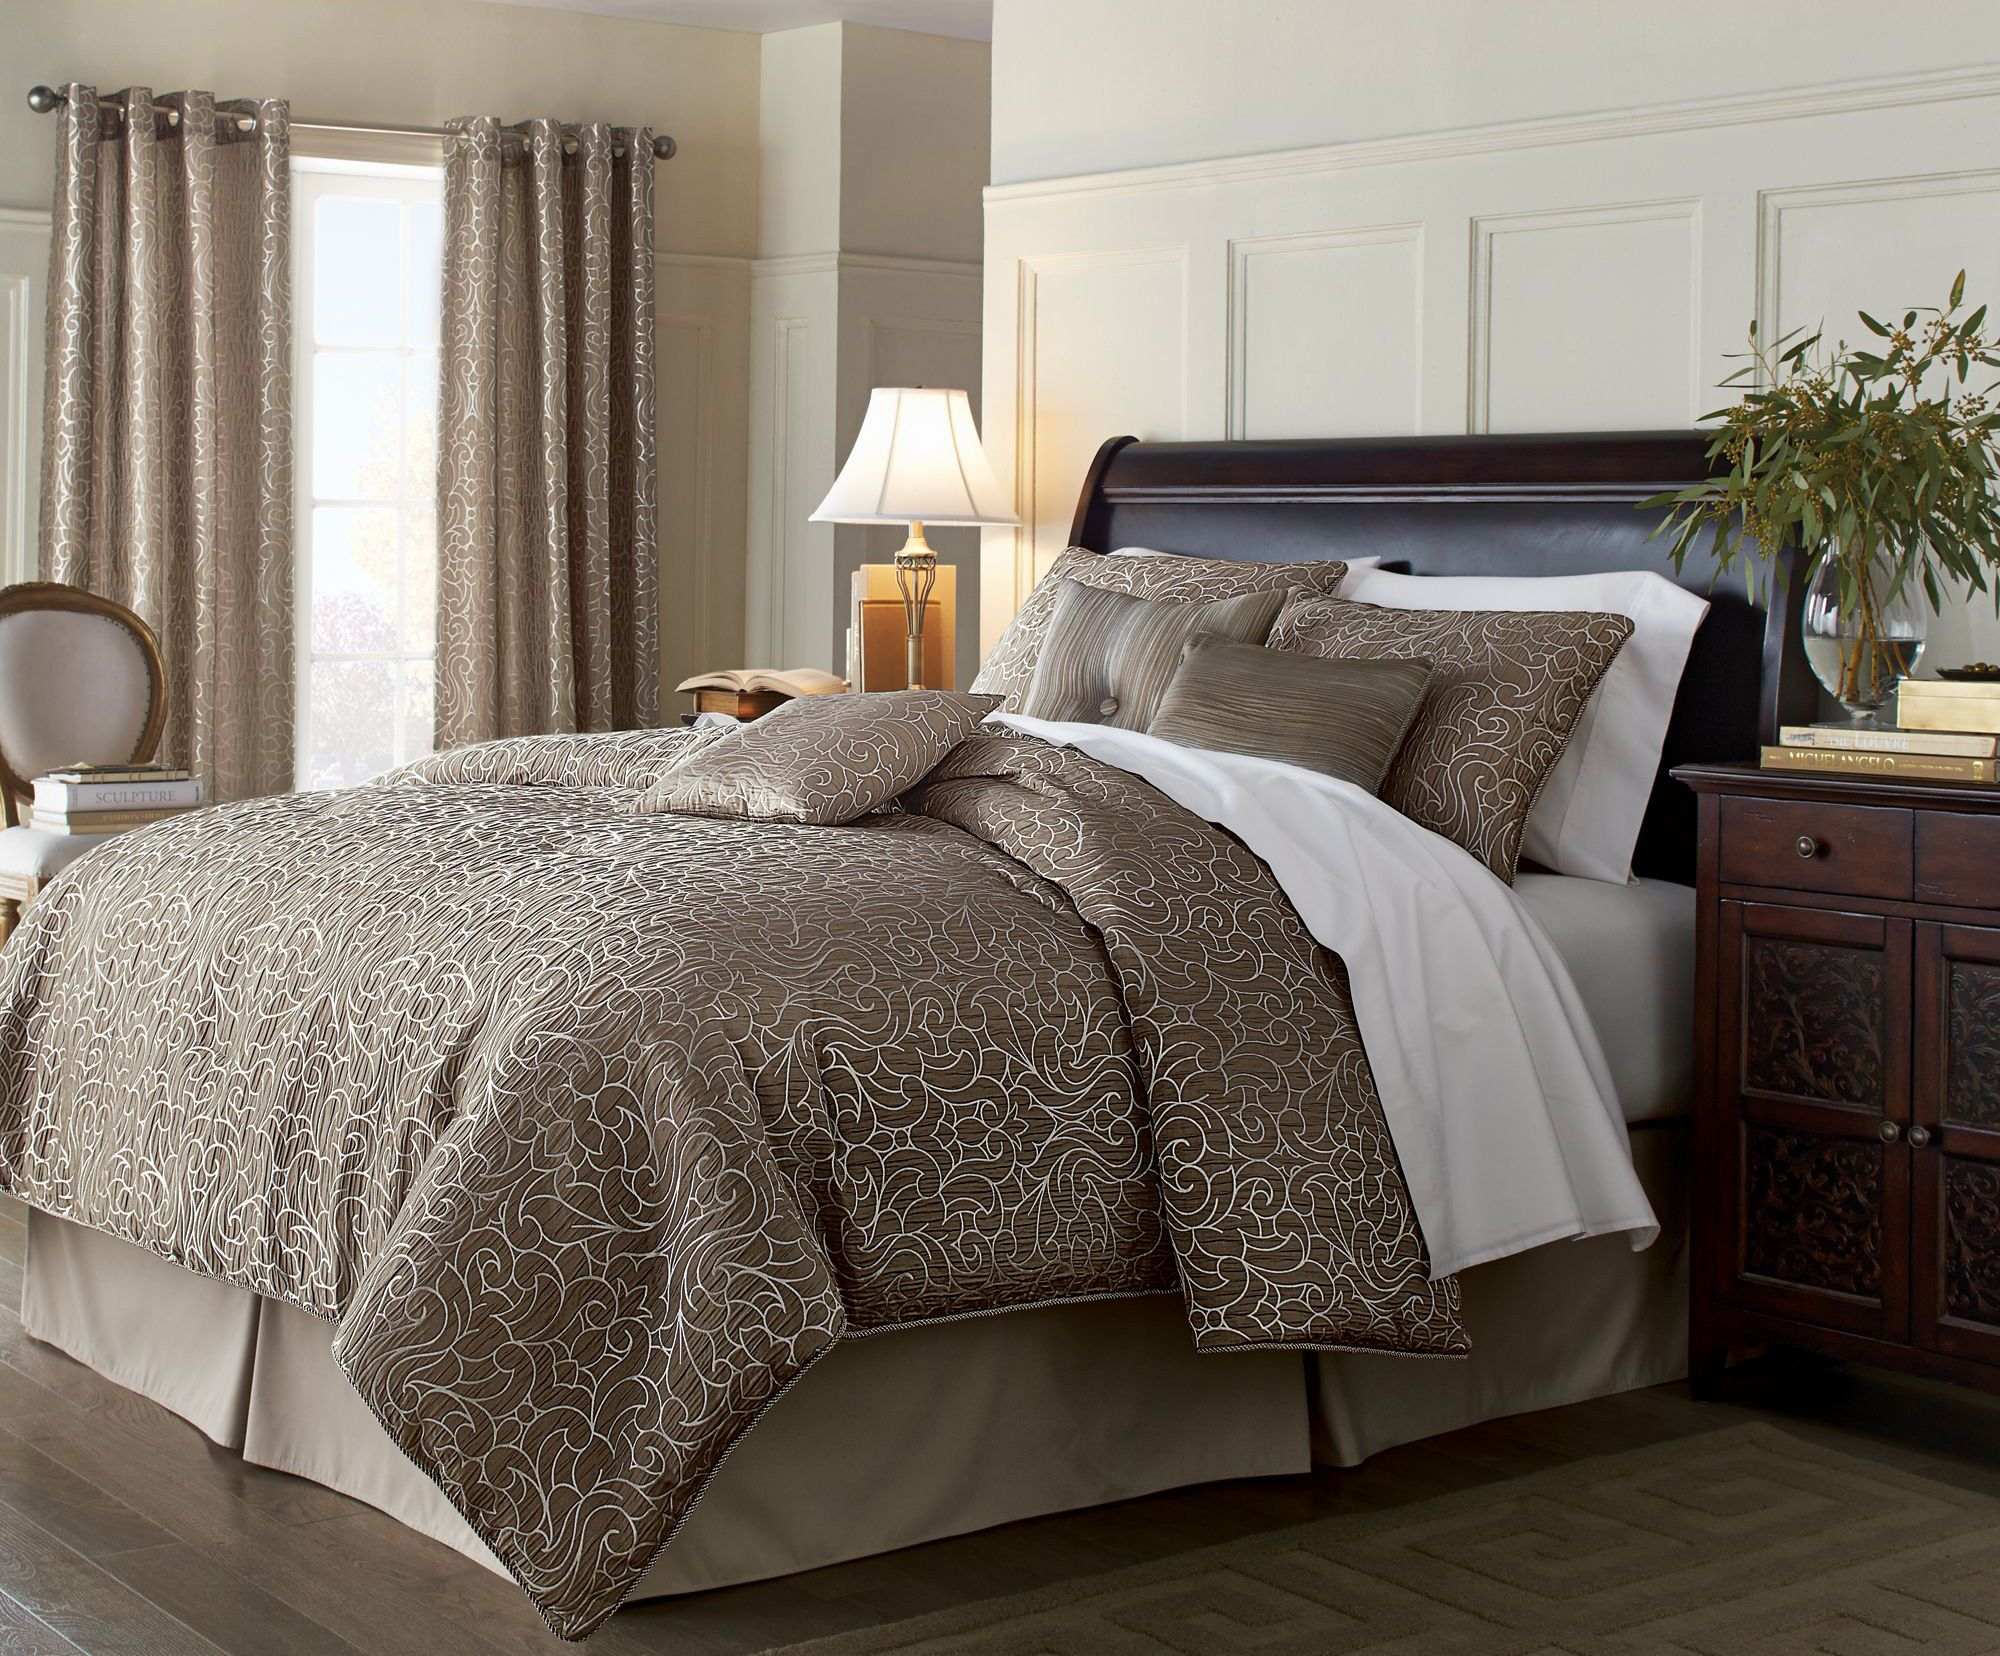 'Arabesque' 7Piece Comforter Set Comforter sets, Home